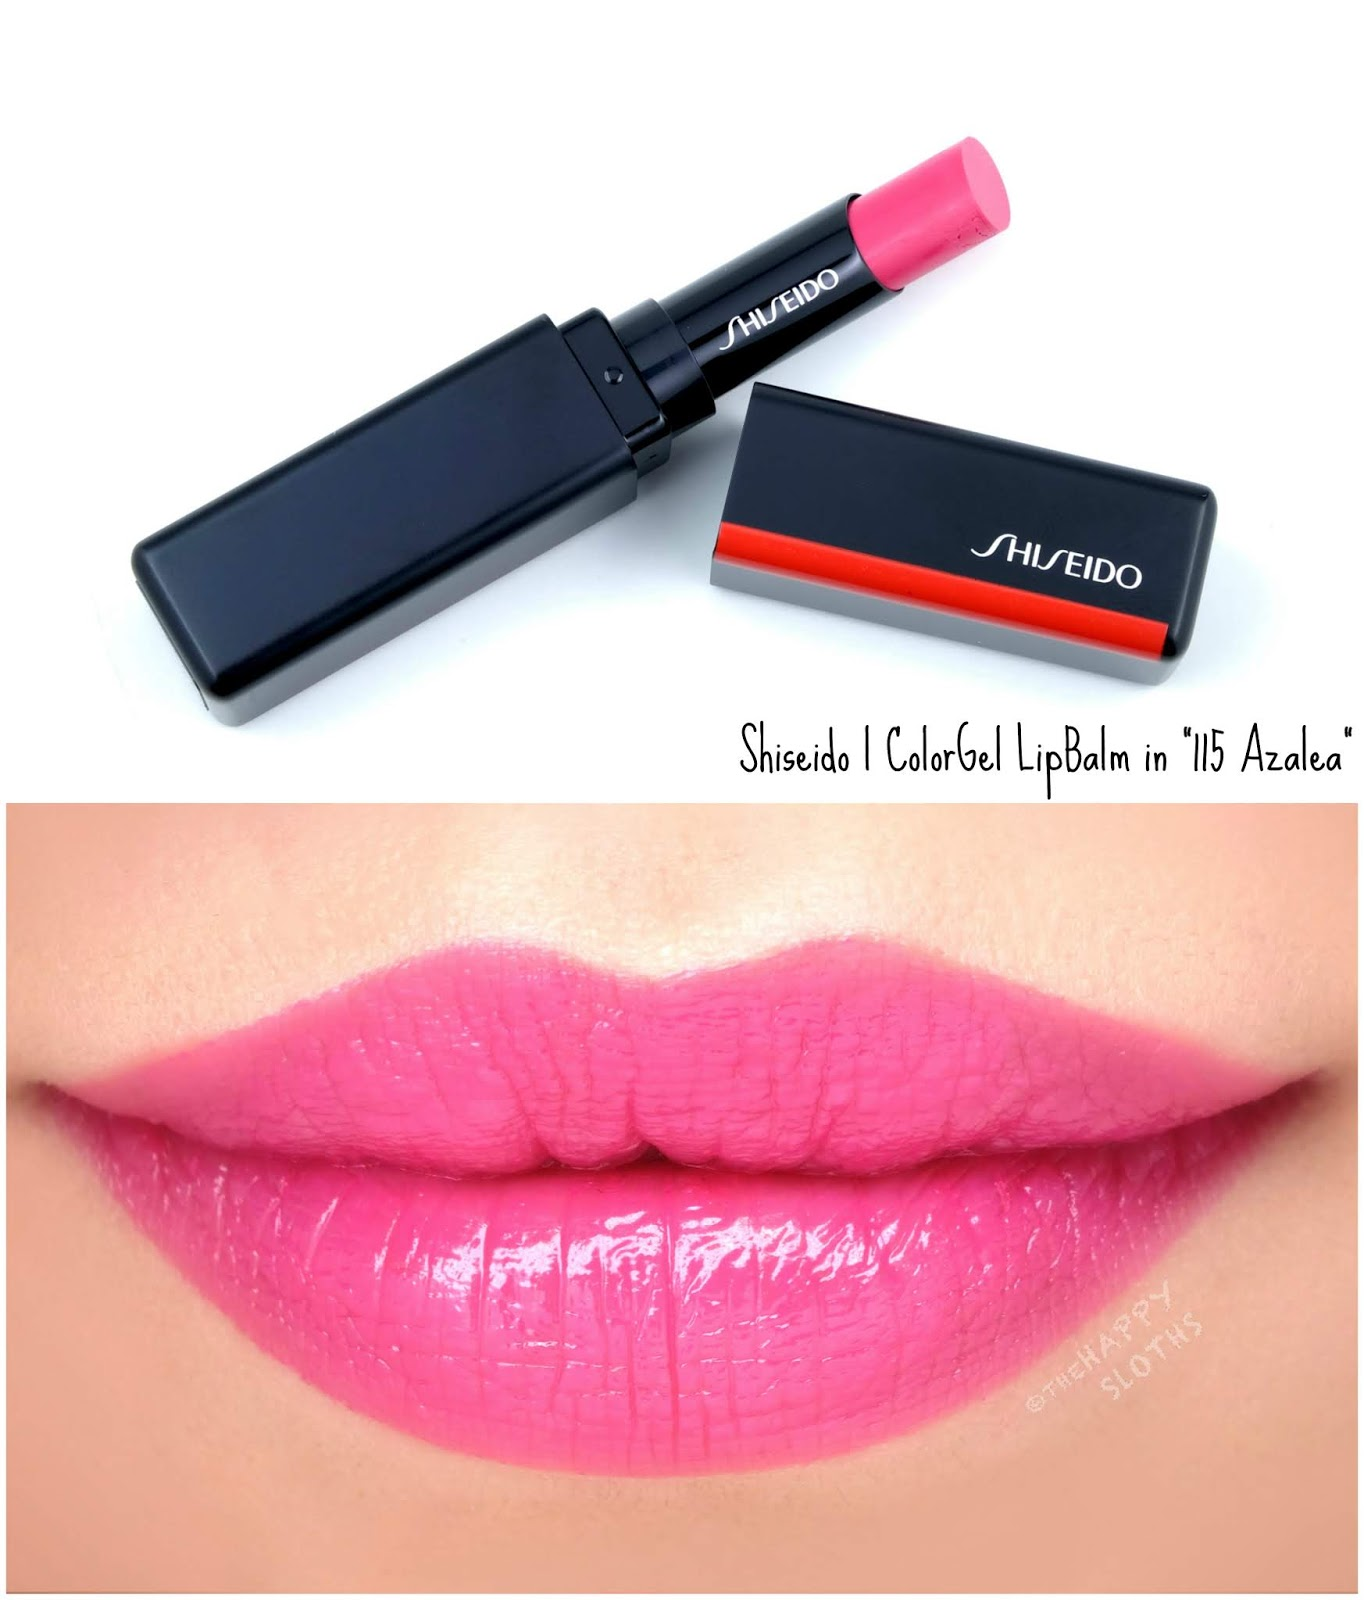 "Shiseido | ColorGel LipBalm in ""115 Azalea"": Review and Swatches"